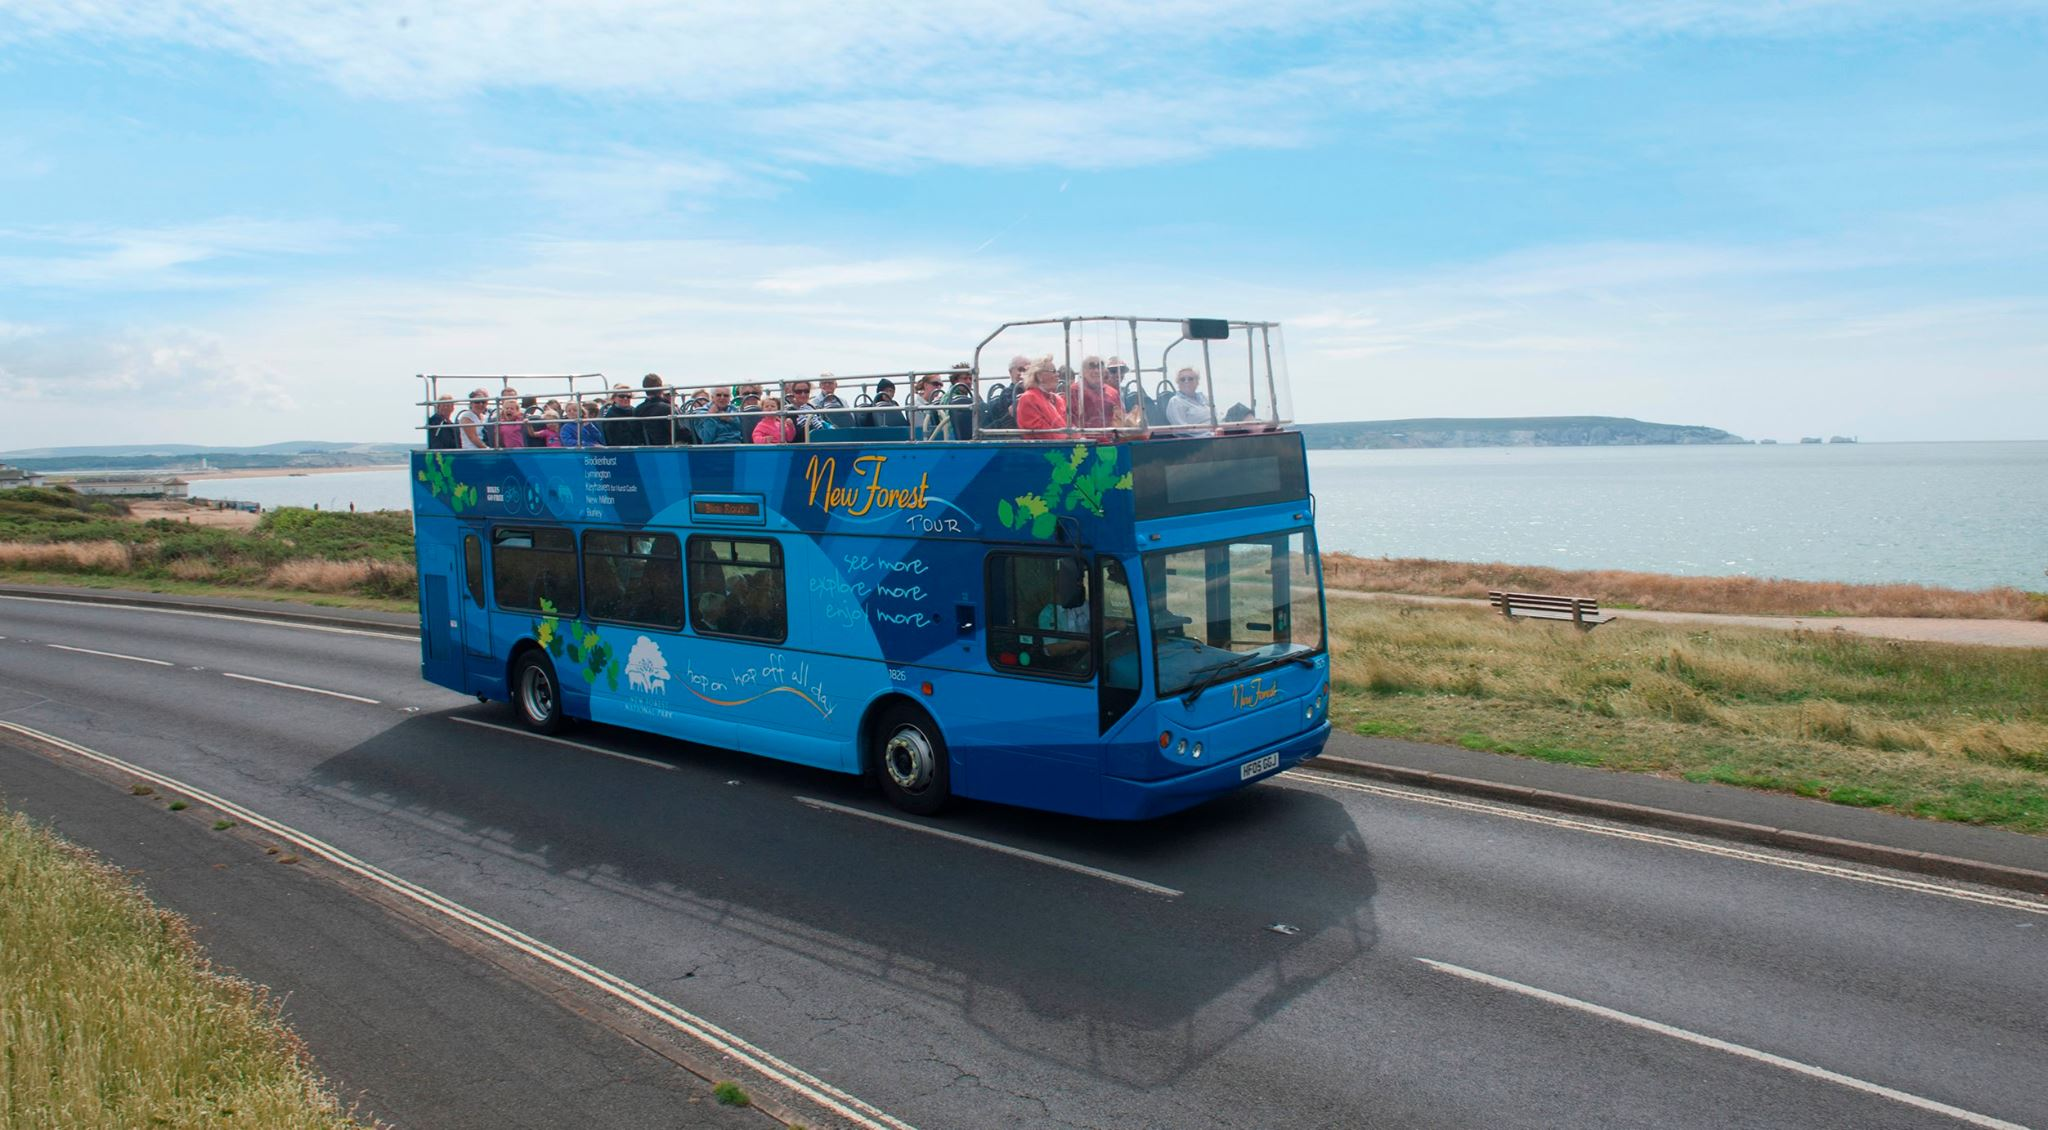 Lepe to the Beach this summer with Bluestar 9